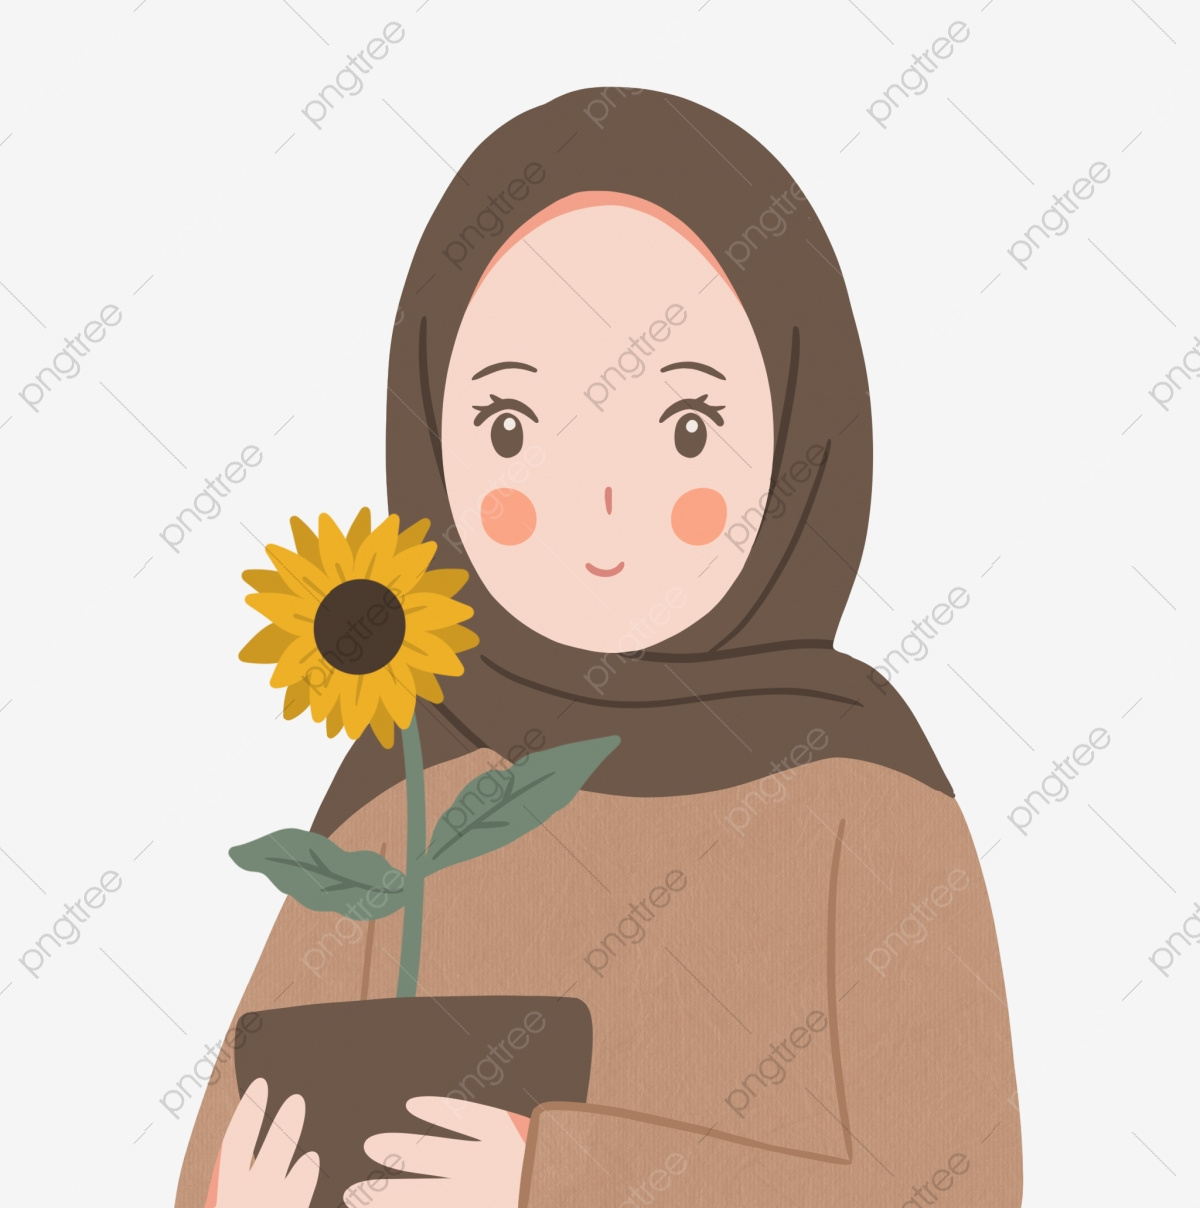 Hijab Png Images Vector And Psd Files Free Download On Pngtree